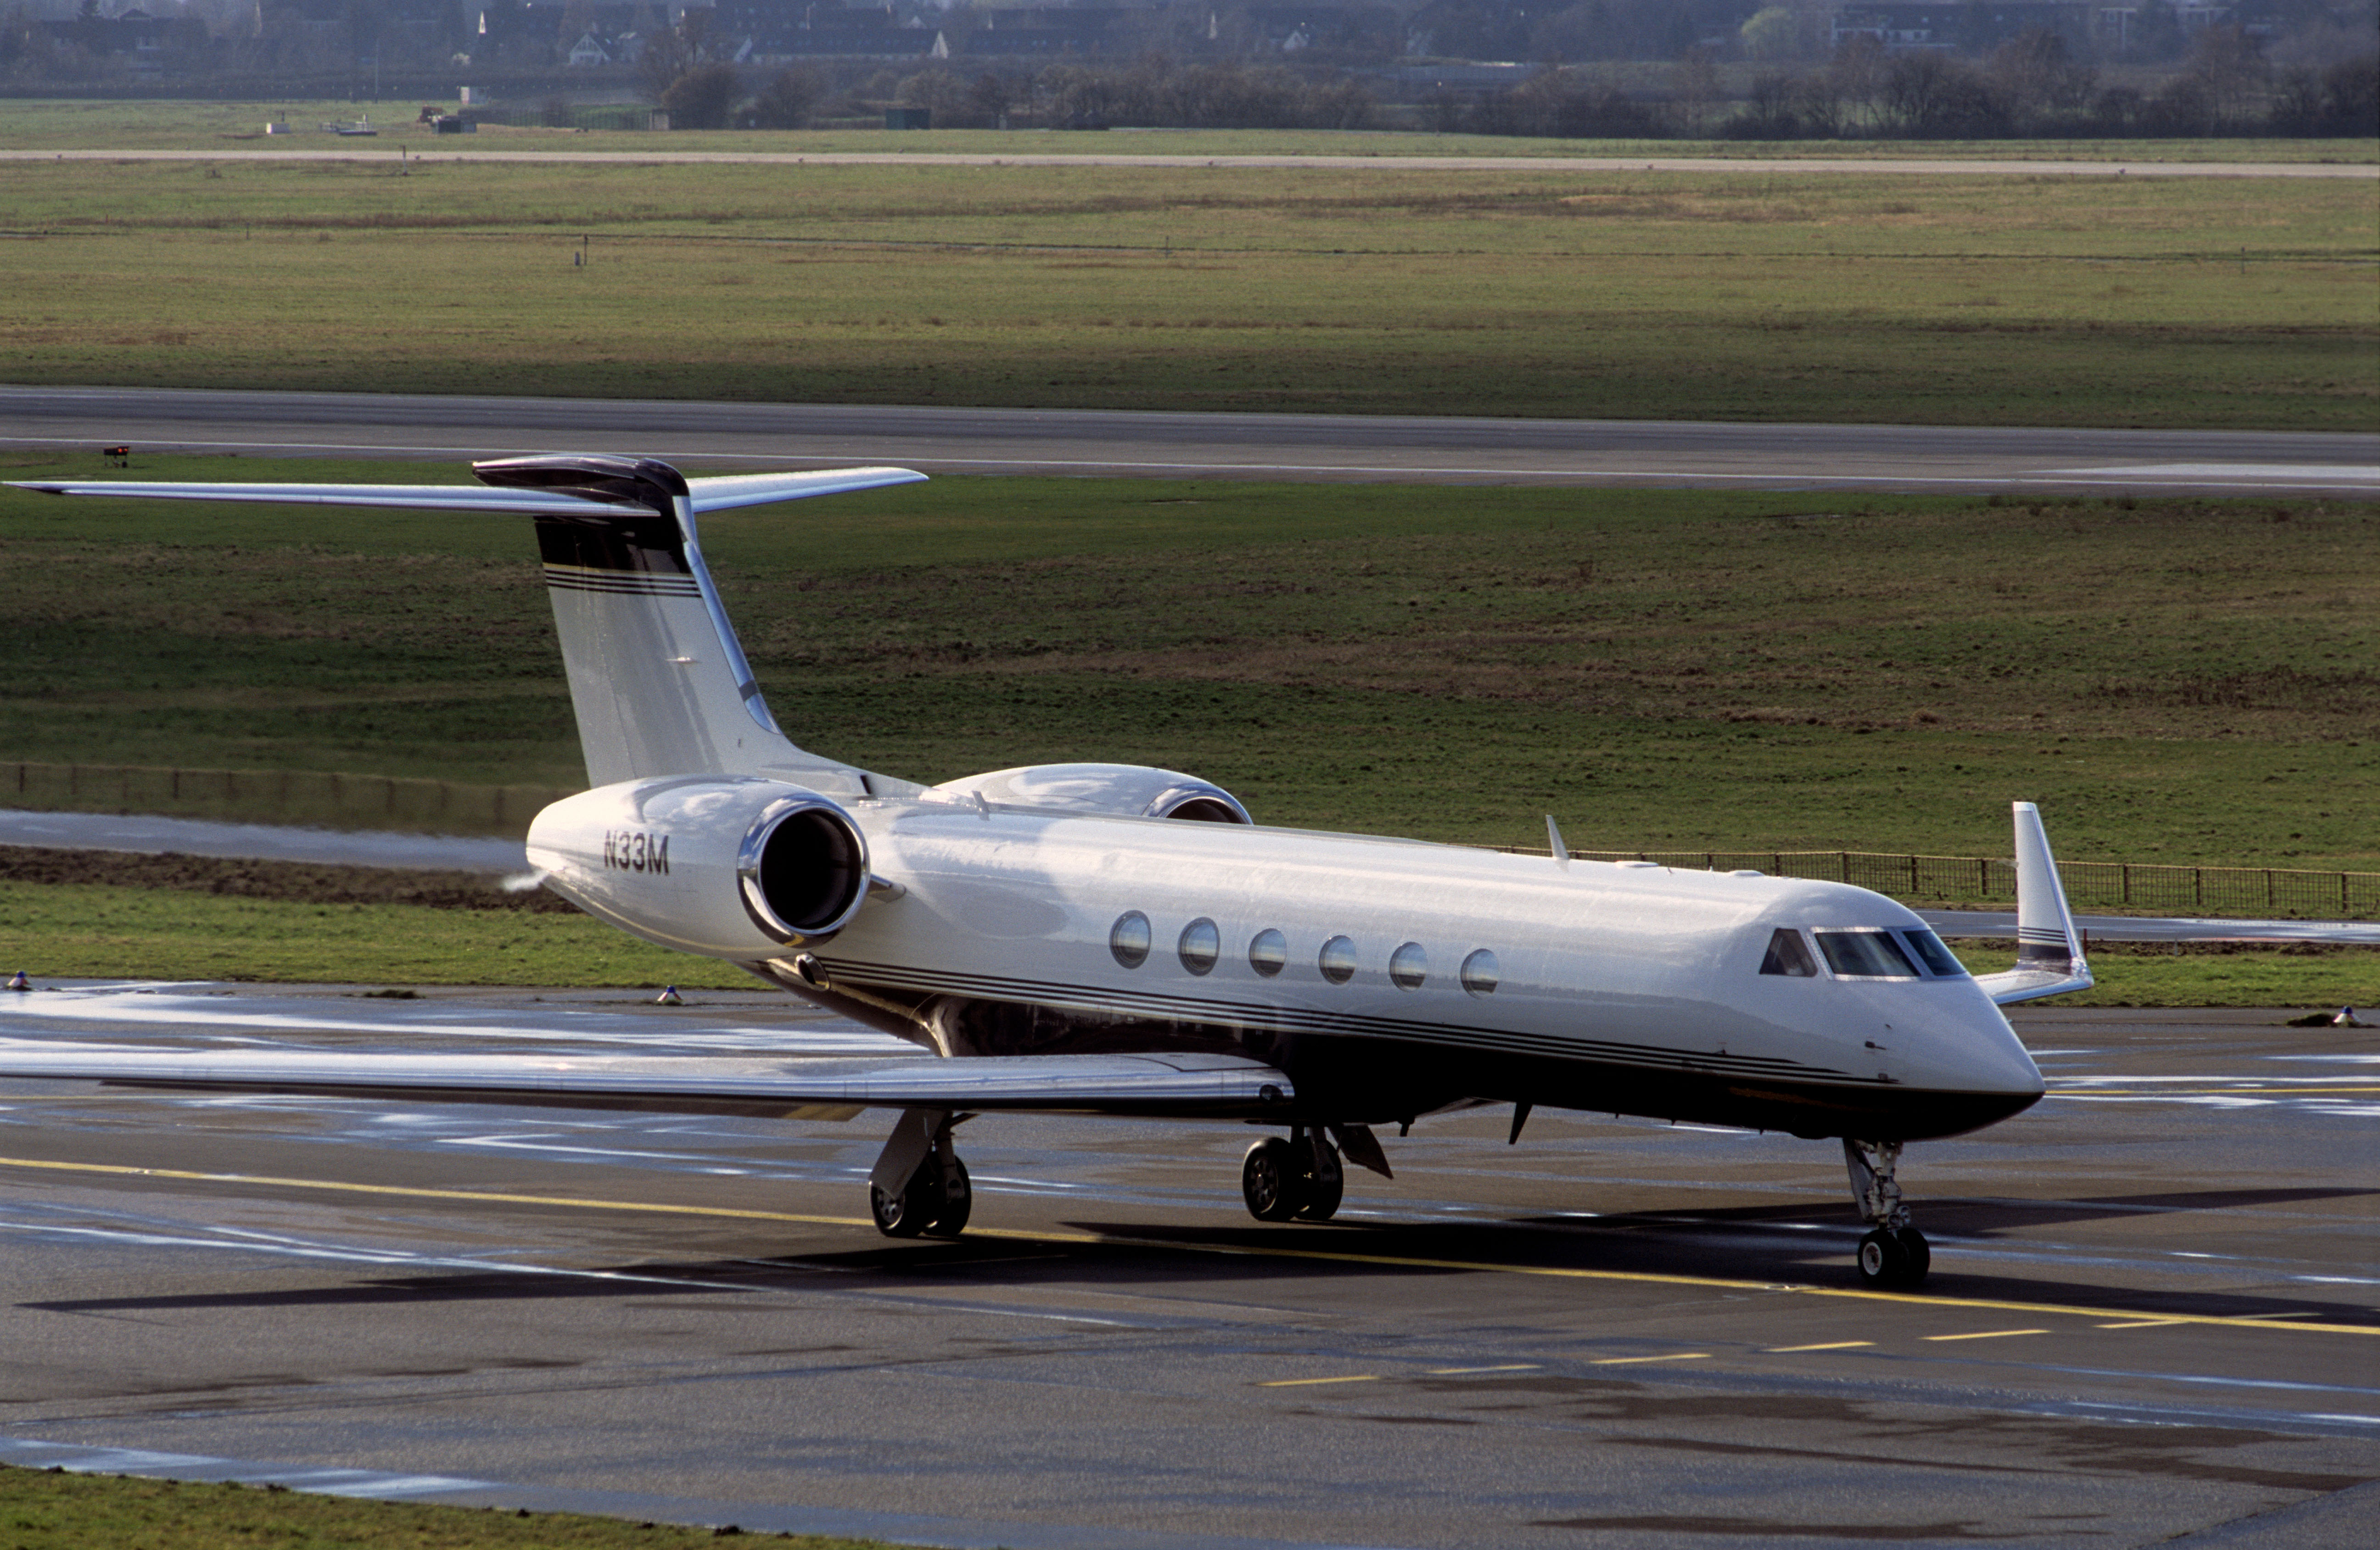 Gulfstream G-V private passenger jet (N33M)